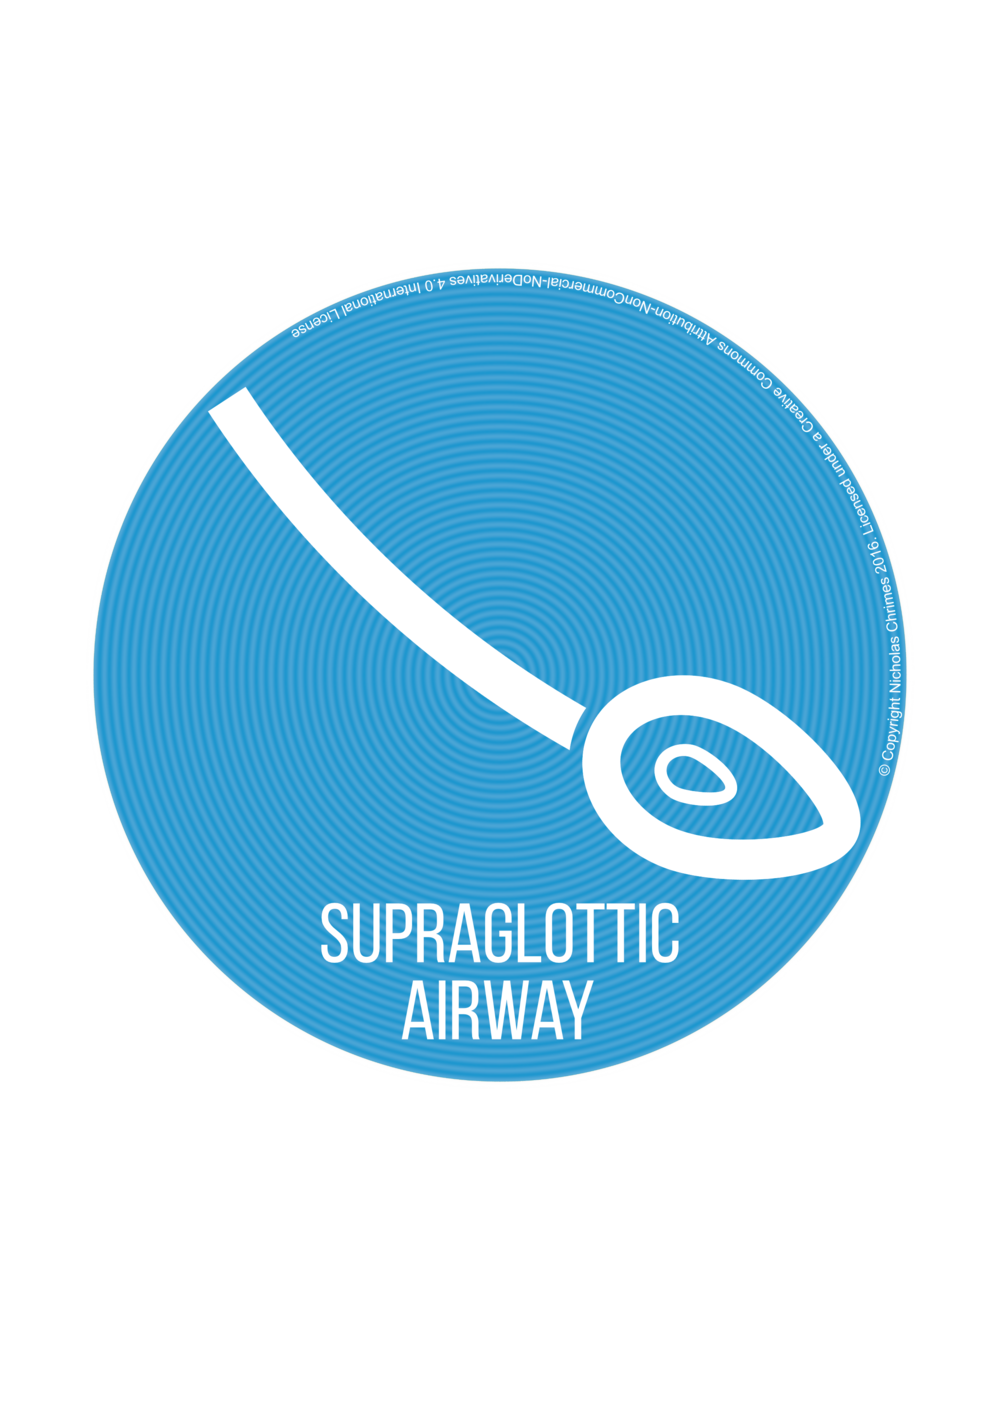 Supraglottic Airway Icon - with text